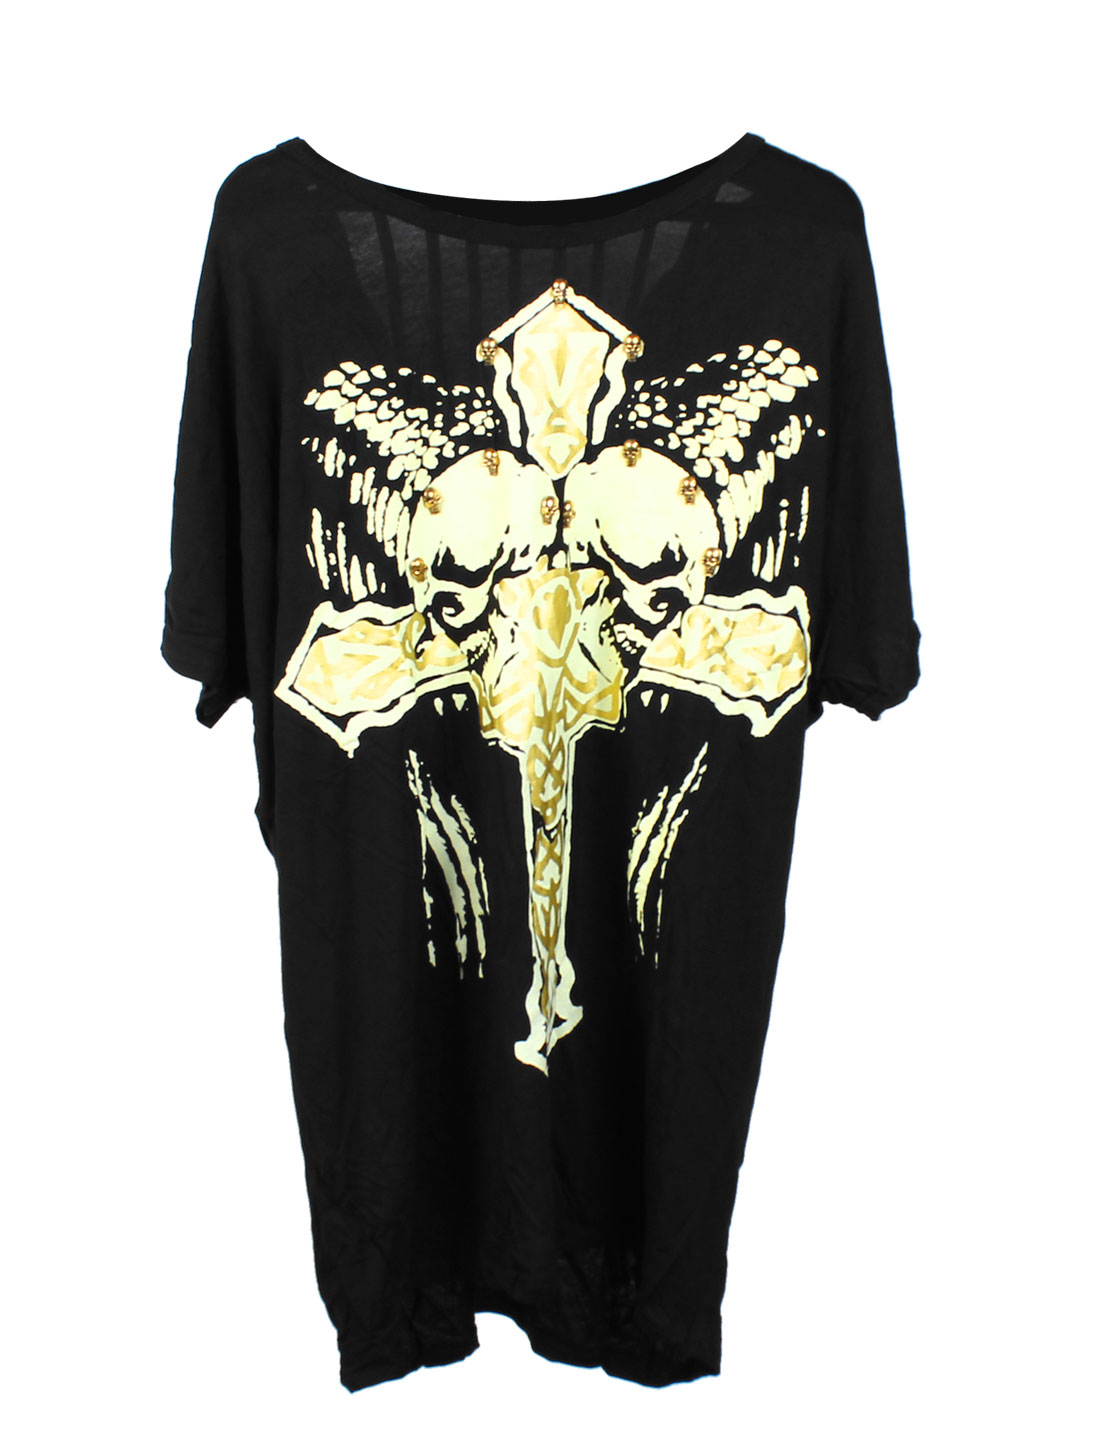 Lady Cross Prints Skull Metal Decor Mesh Panel Back Tunic Top Black S